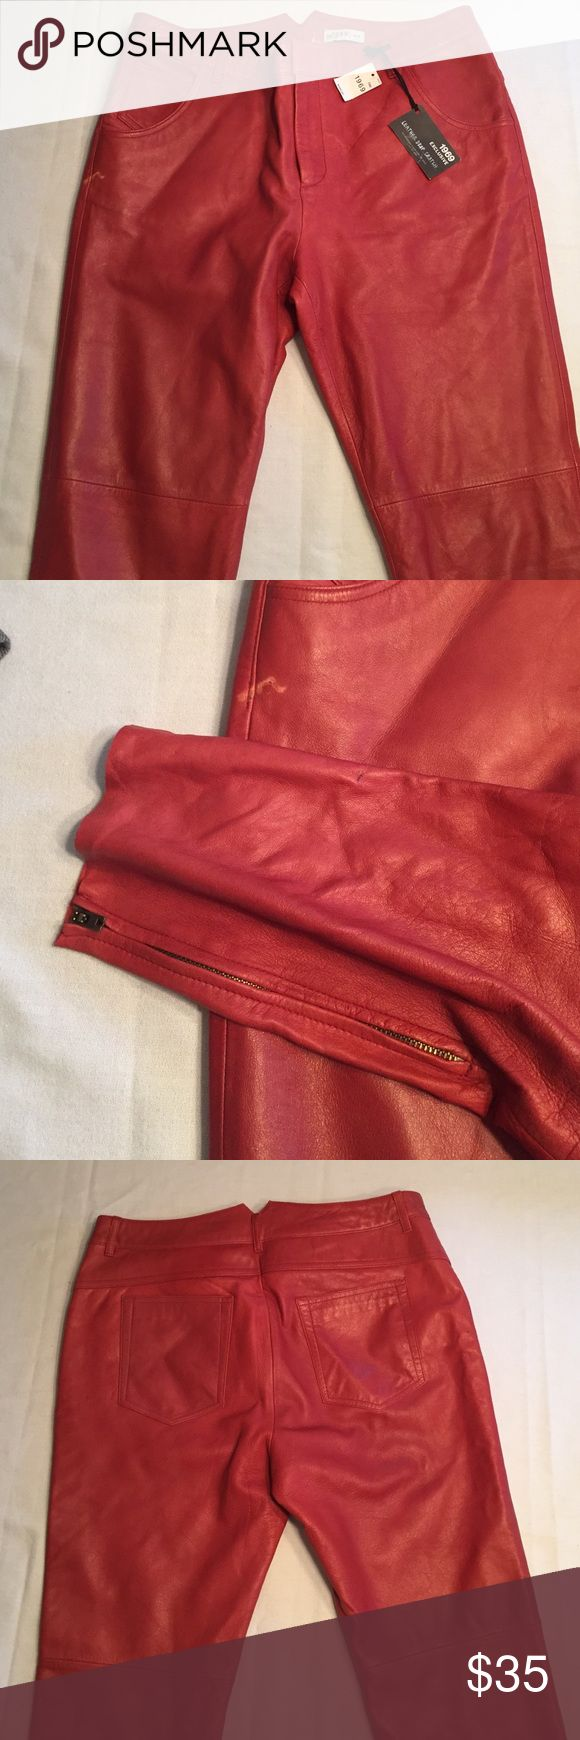 Red leather drop crotch jeans New with tags but have defects. Scratch in the leather on right side and a pen mark by ankles. See pictures. Smoke free and animal free. GAP Jeans Ankle & Cropped